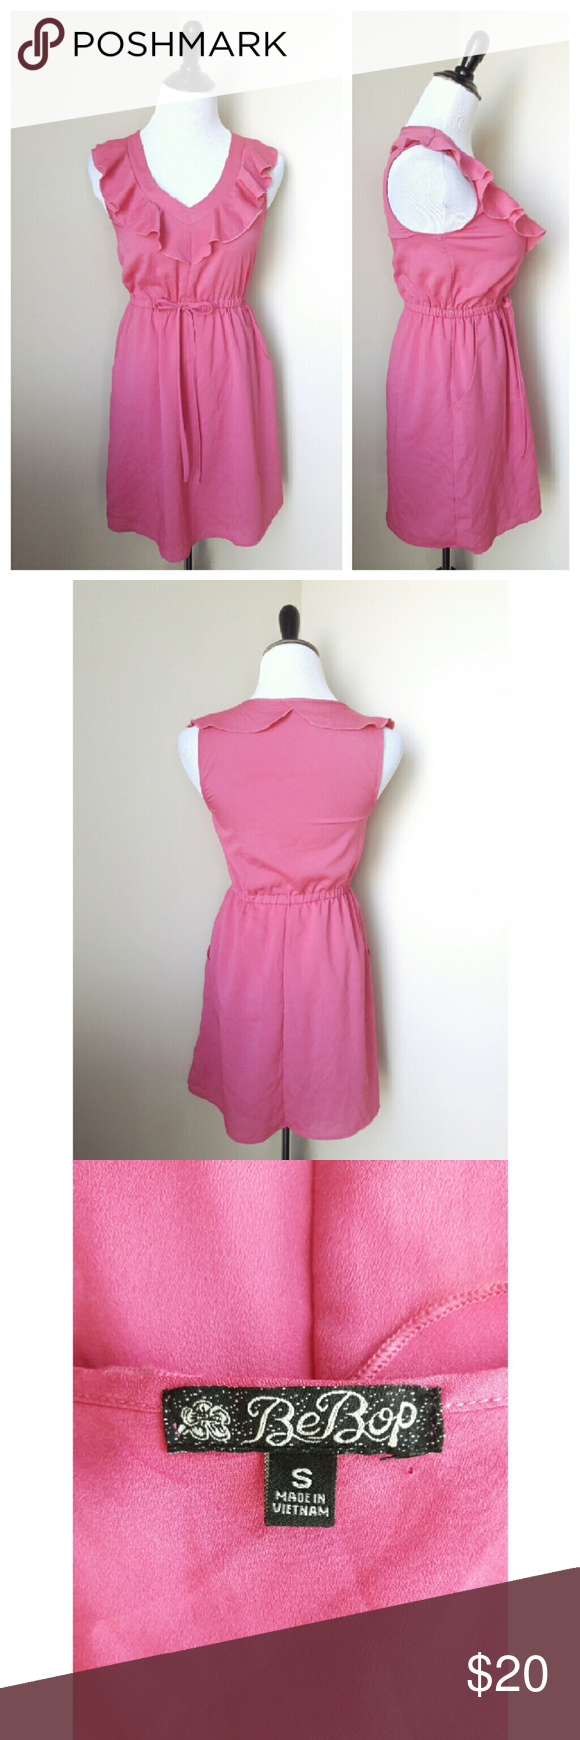 {bebop} pink ruffle dress An adorable pink dress from bebop  Features a ruffled neckline, a drawstring elastic waist, and best of all, pockets!!  Gently worn Size small BeBop Dresses